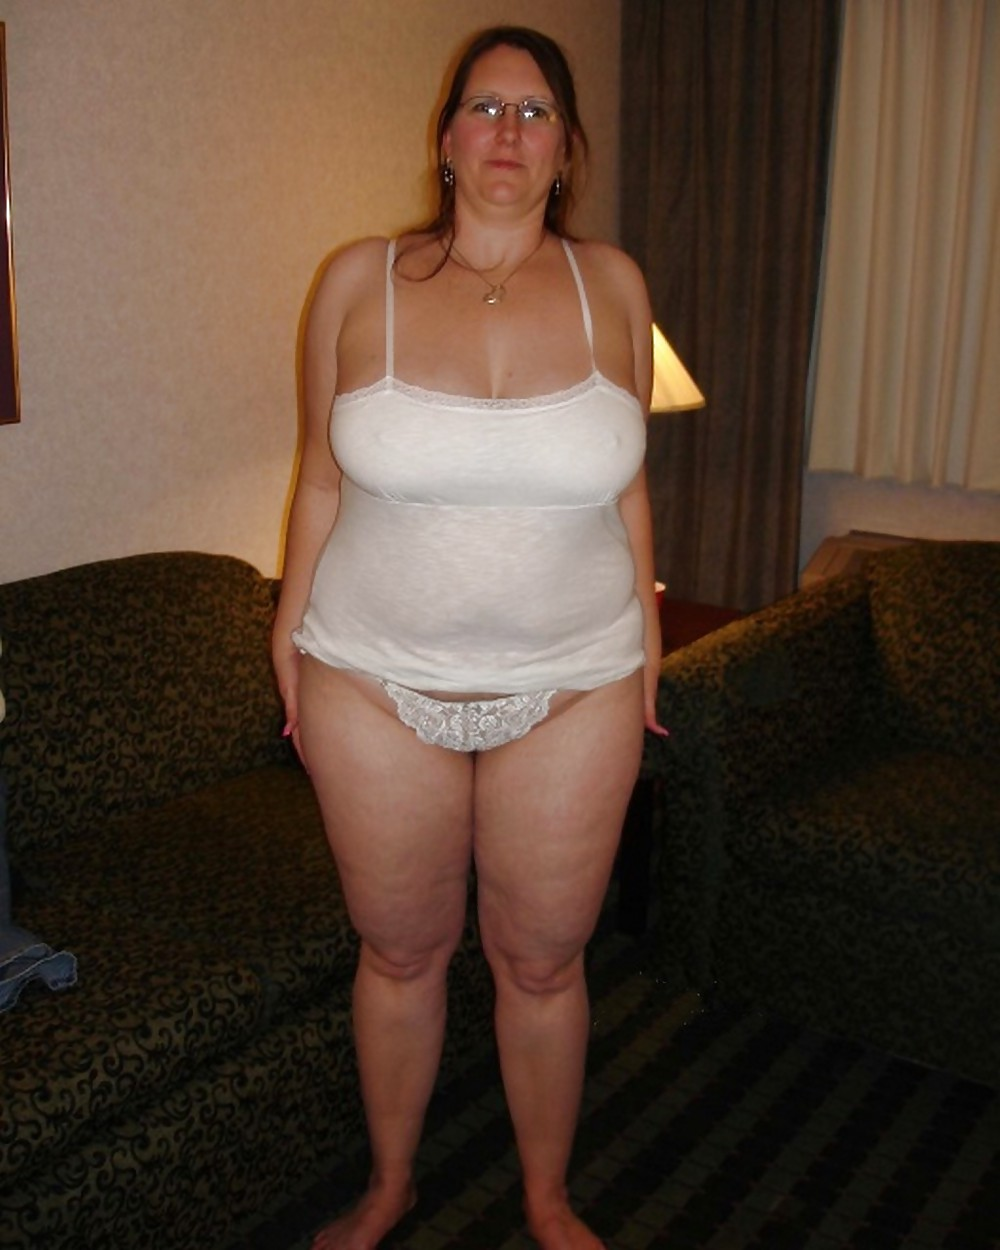 sexy fat american wife stephani as soon as naked girl